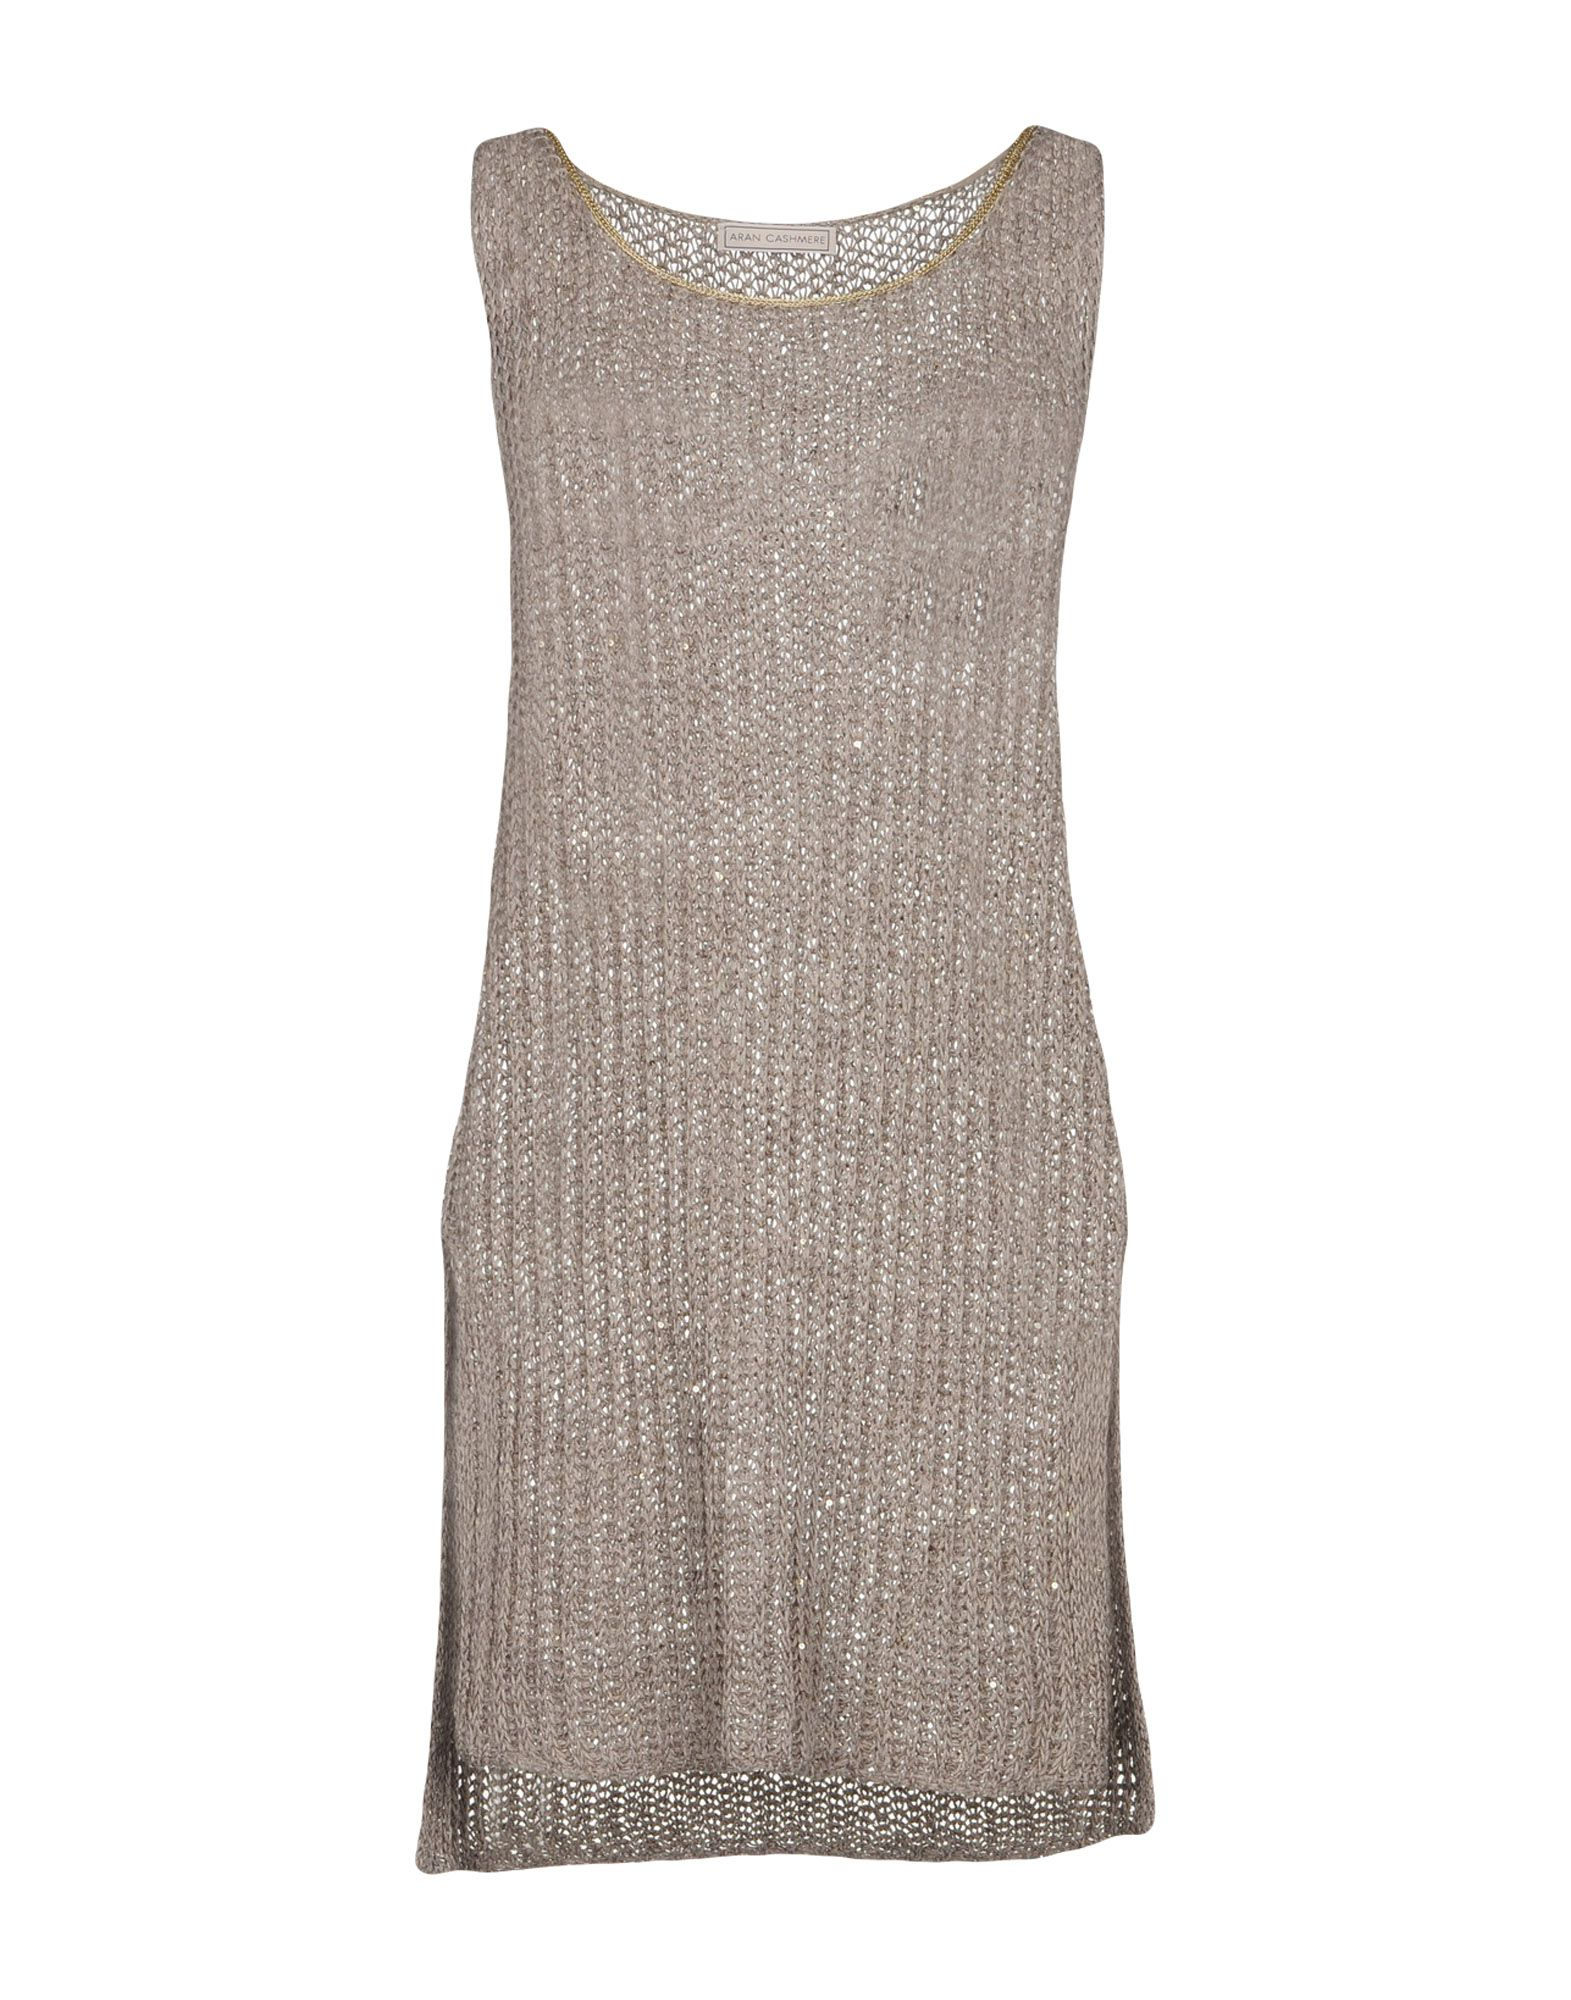 ARAN CASHMERE Sweater in Khaki